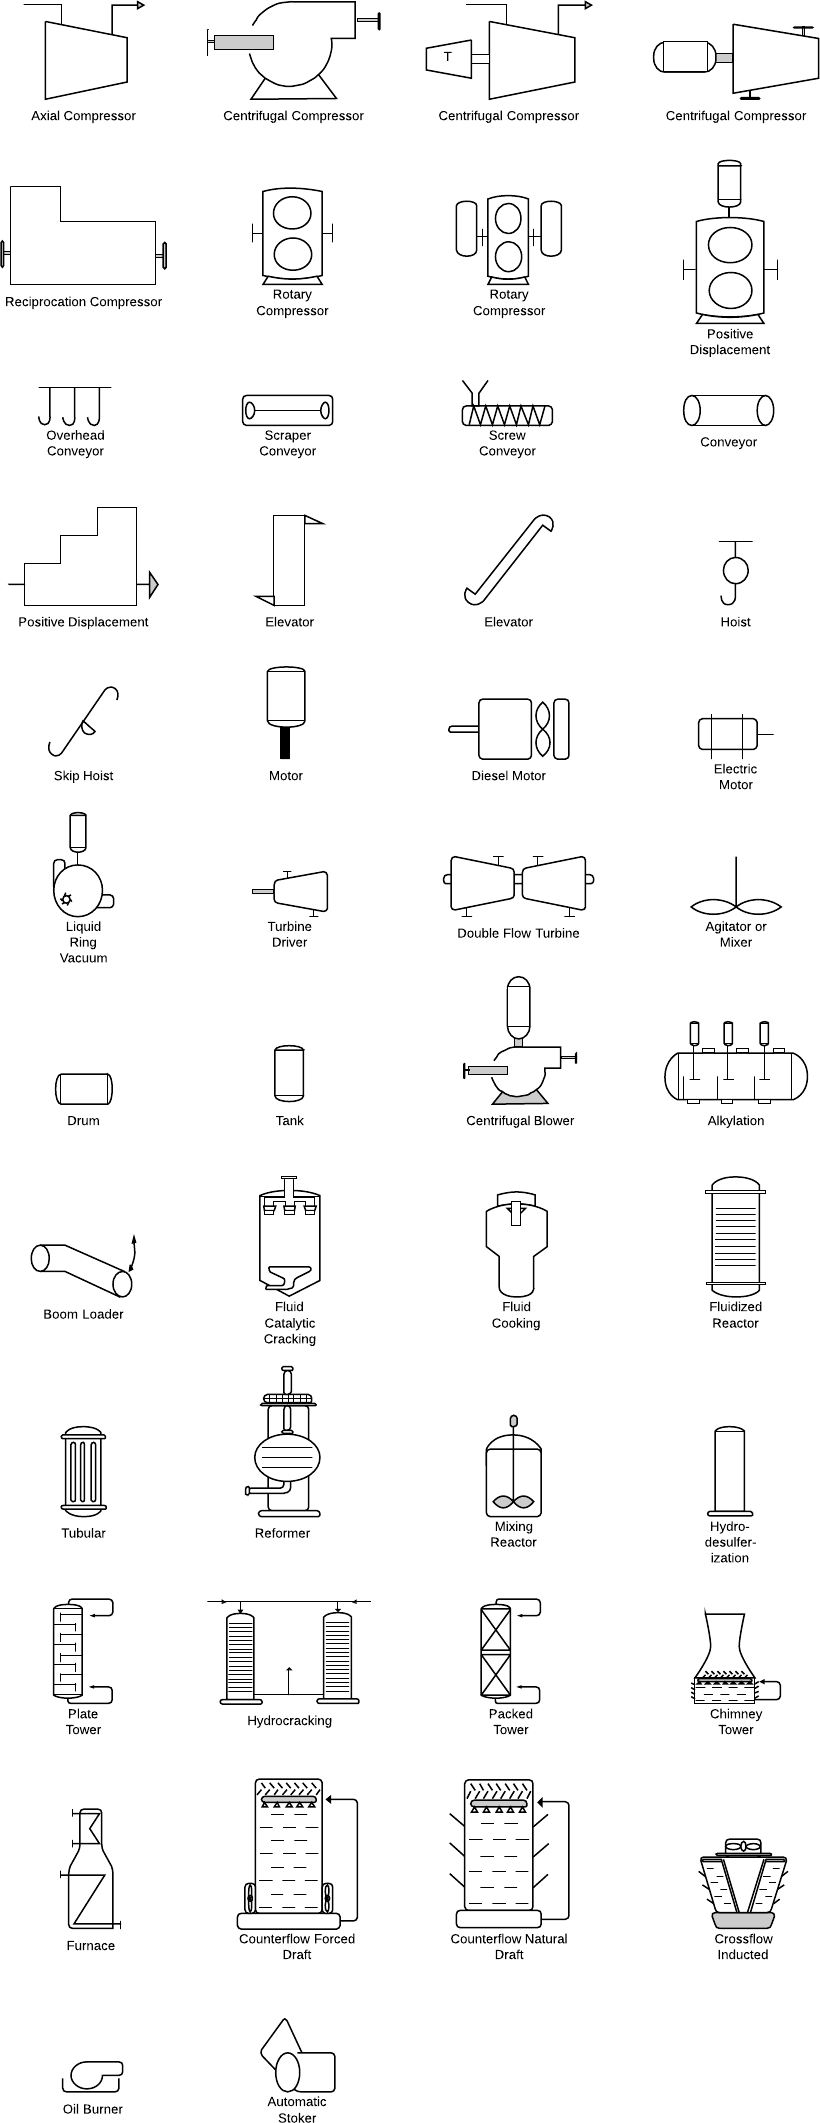 piping schematic valve symbols